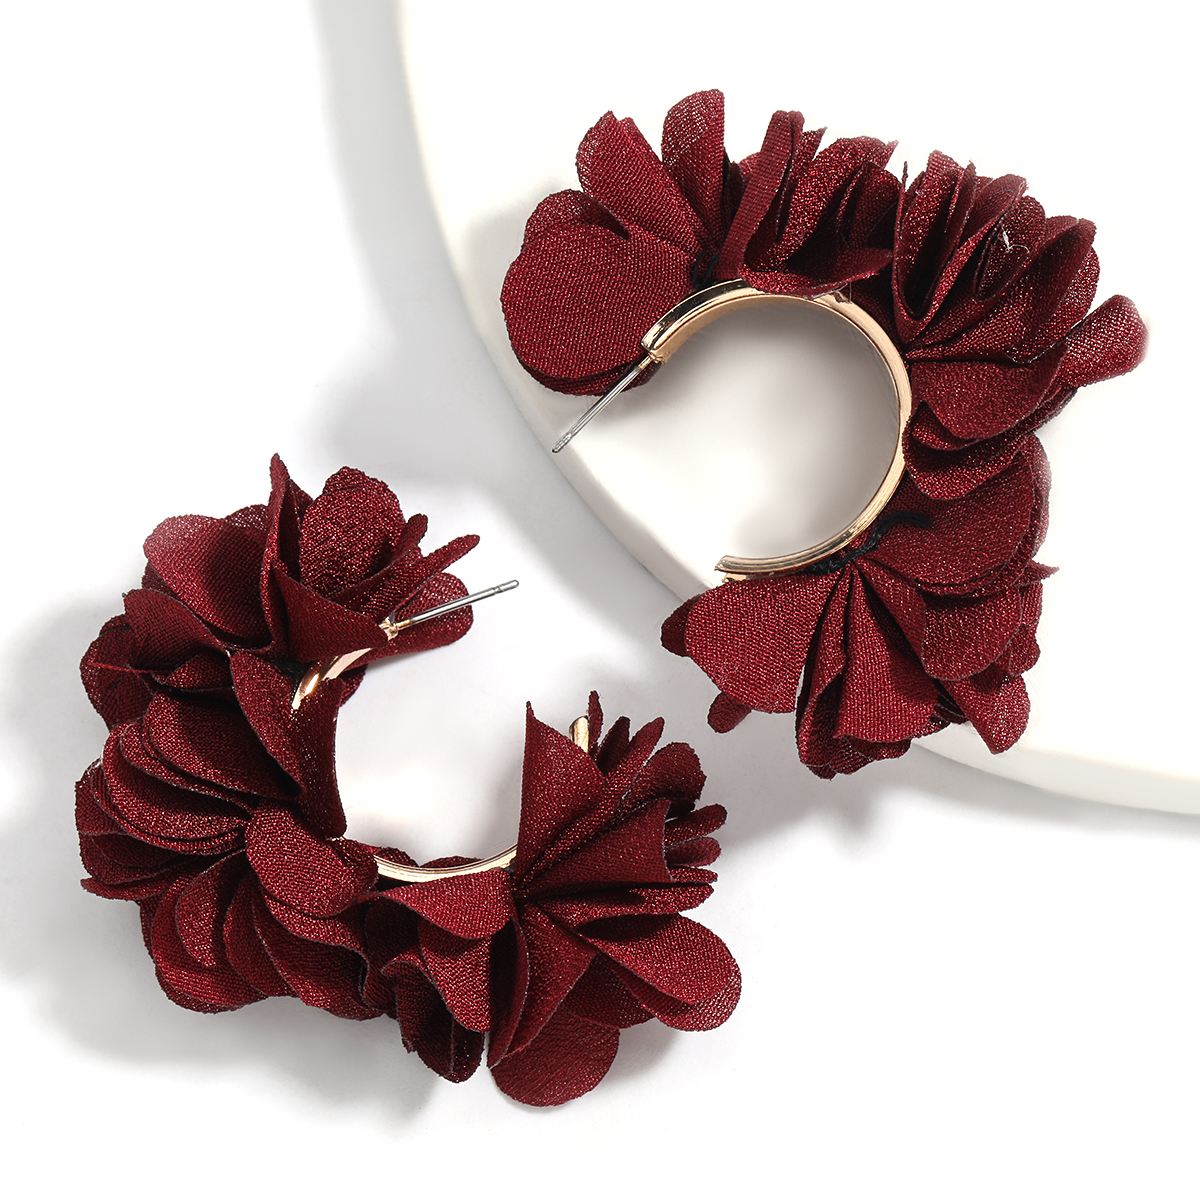 Pauli Manfi Fashionable Simple C-shaped Metal Fabric Flower Earrings Women's Exaggerated Jewelry Accessories